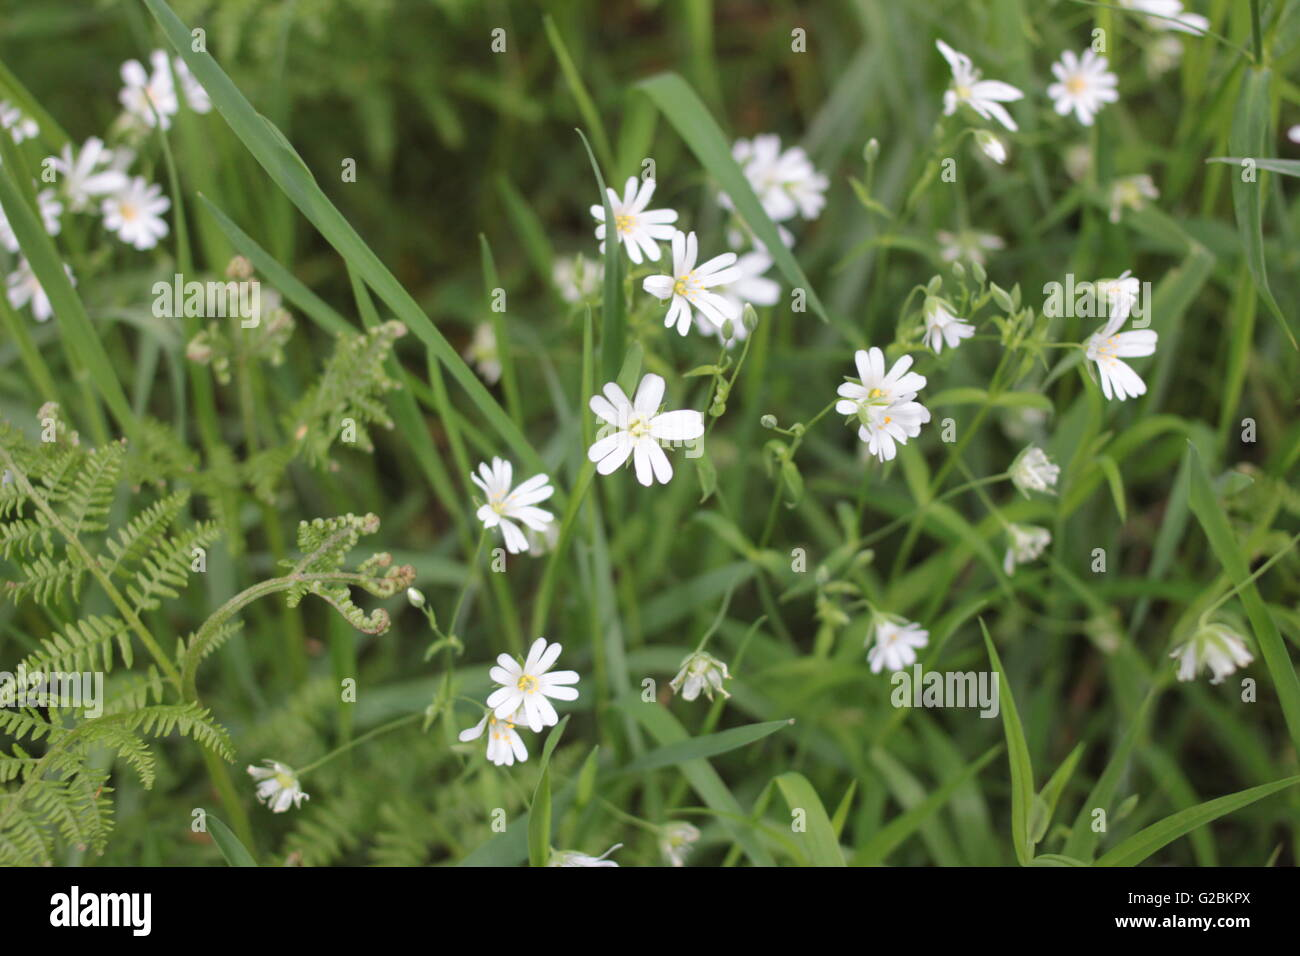 White 'belly button' wild flowers - Stock Image